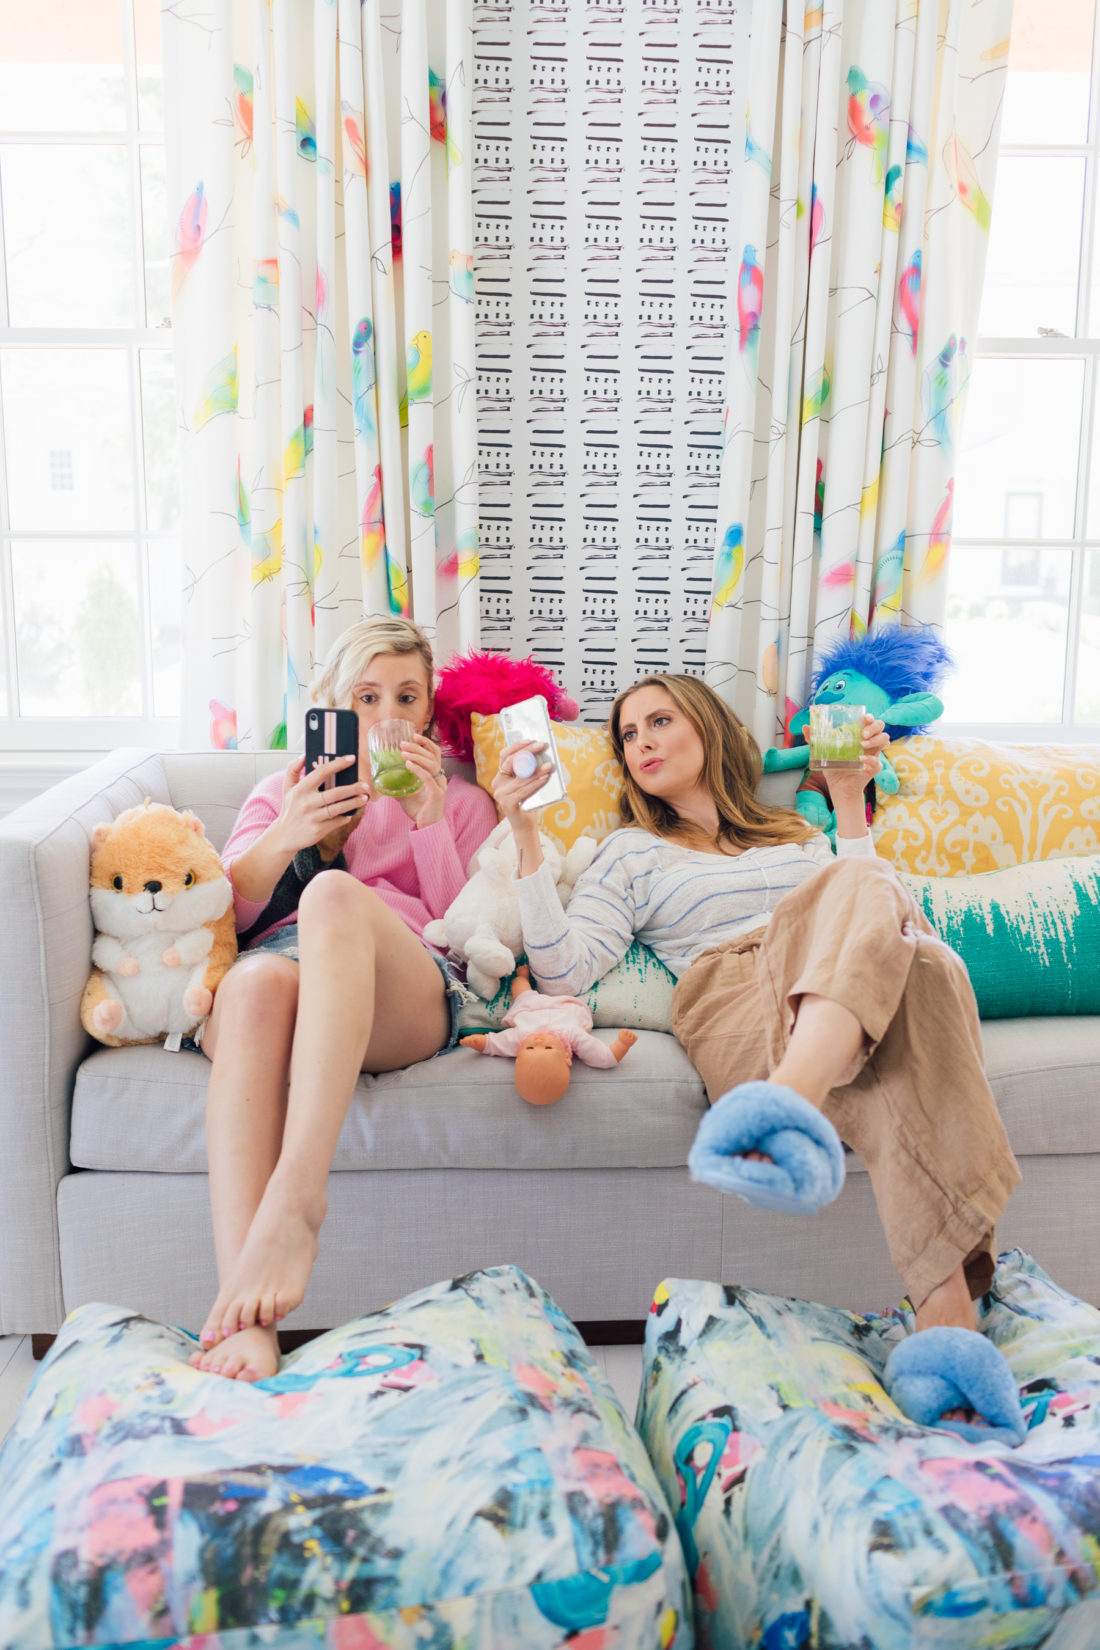 Eva Amurri Martino of Happily Eva After and Julia Dzafic of Lemon Stripes sit on a couch in the Martino house drinking Margaritas and reminiscing on their parenting style